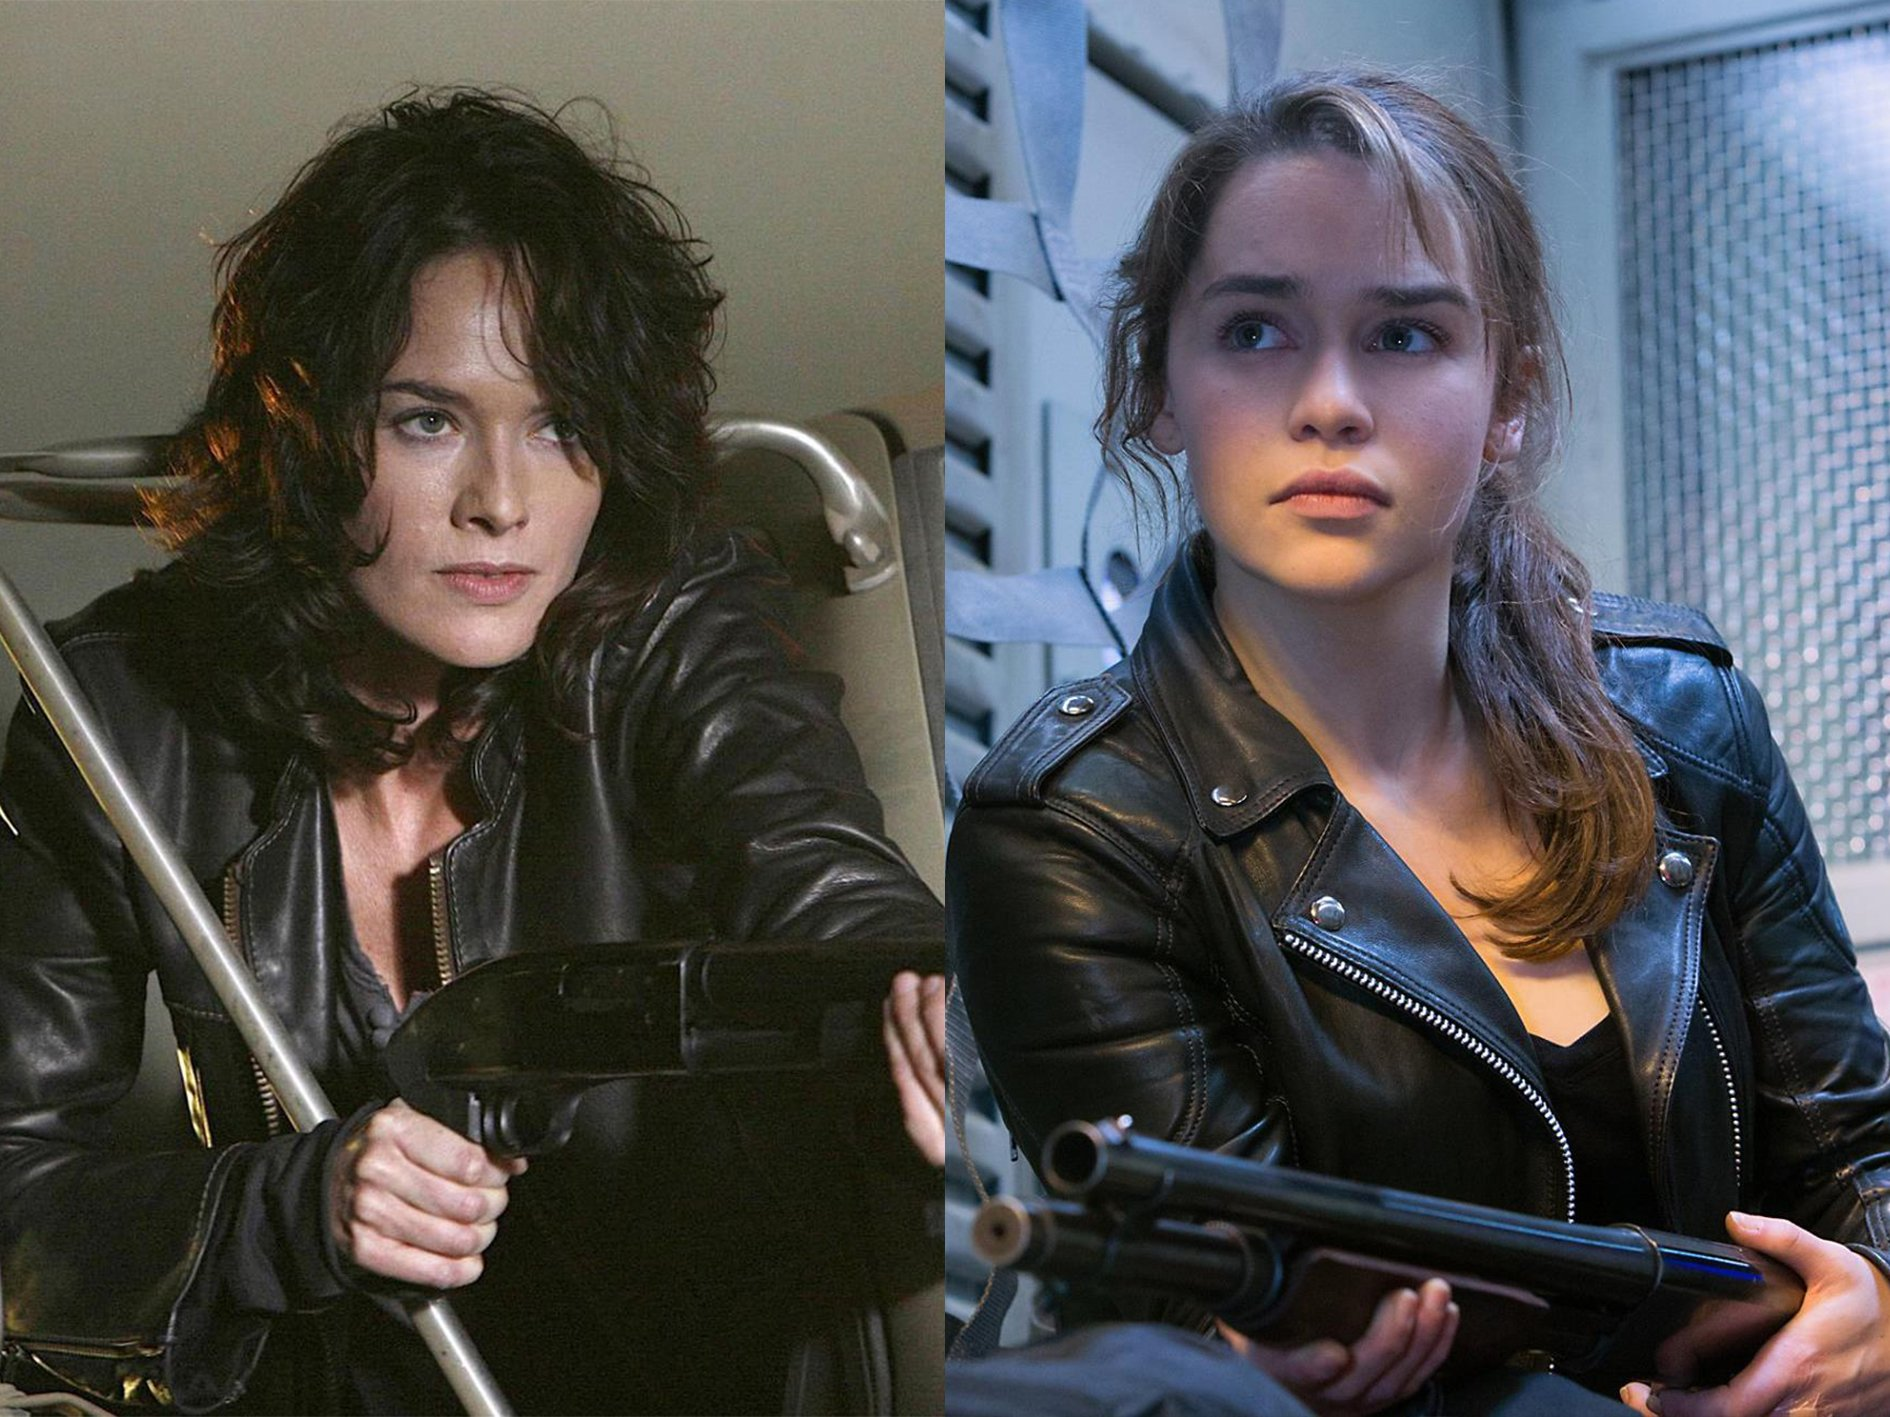 Lena Headey Emilia Clarke Sarah Connor 33 Things You Didn't Know About The Game of Thrones Cast